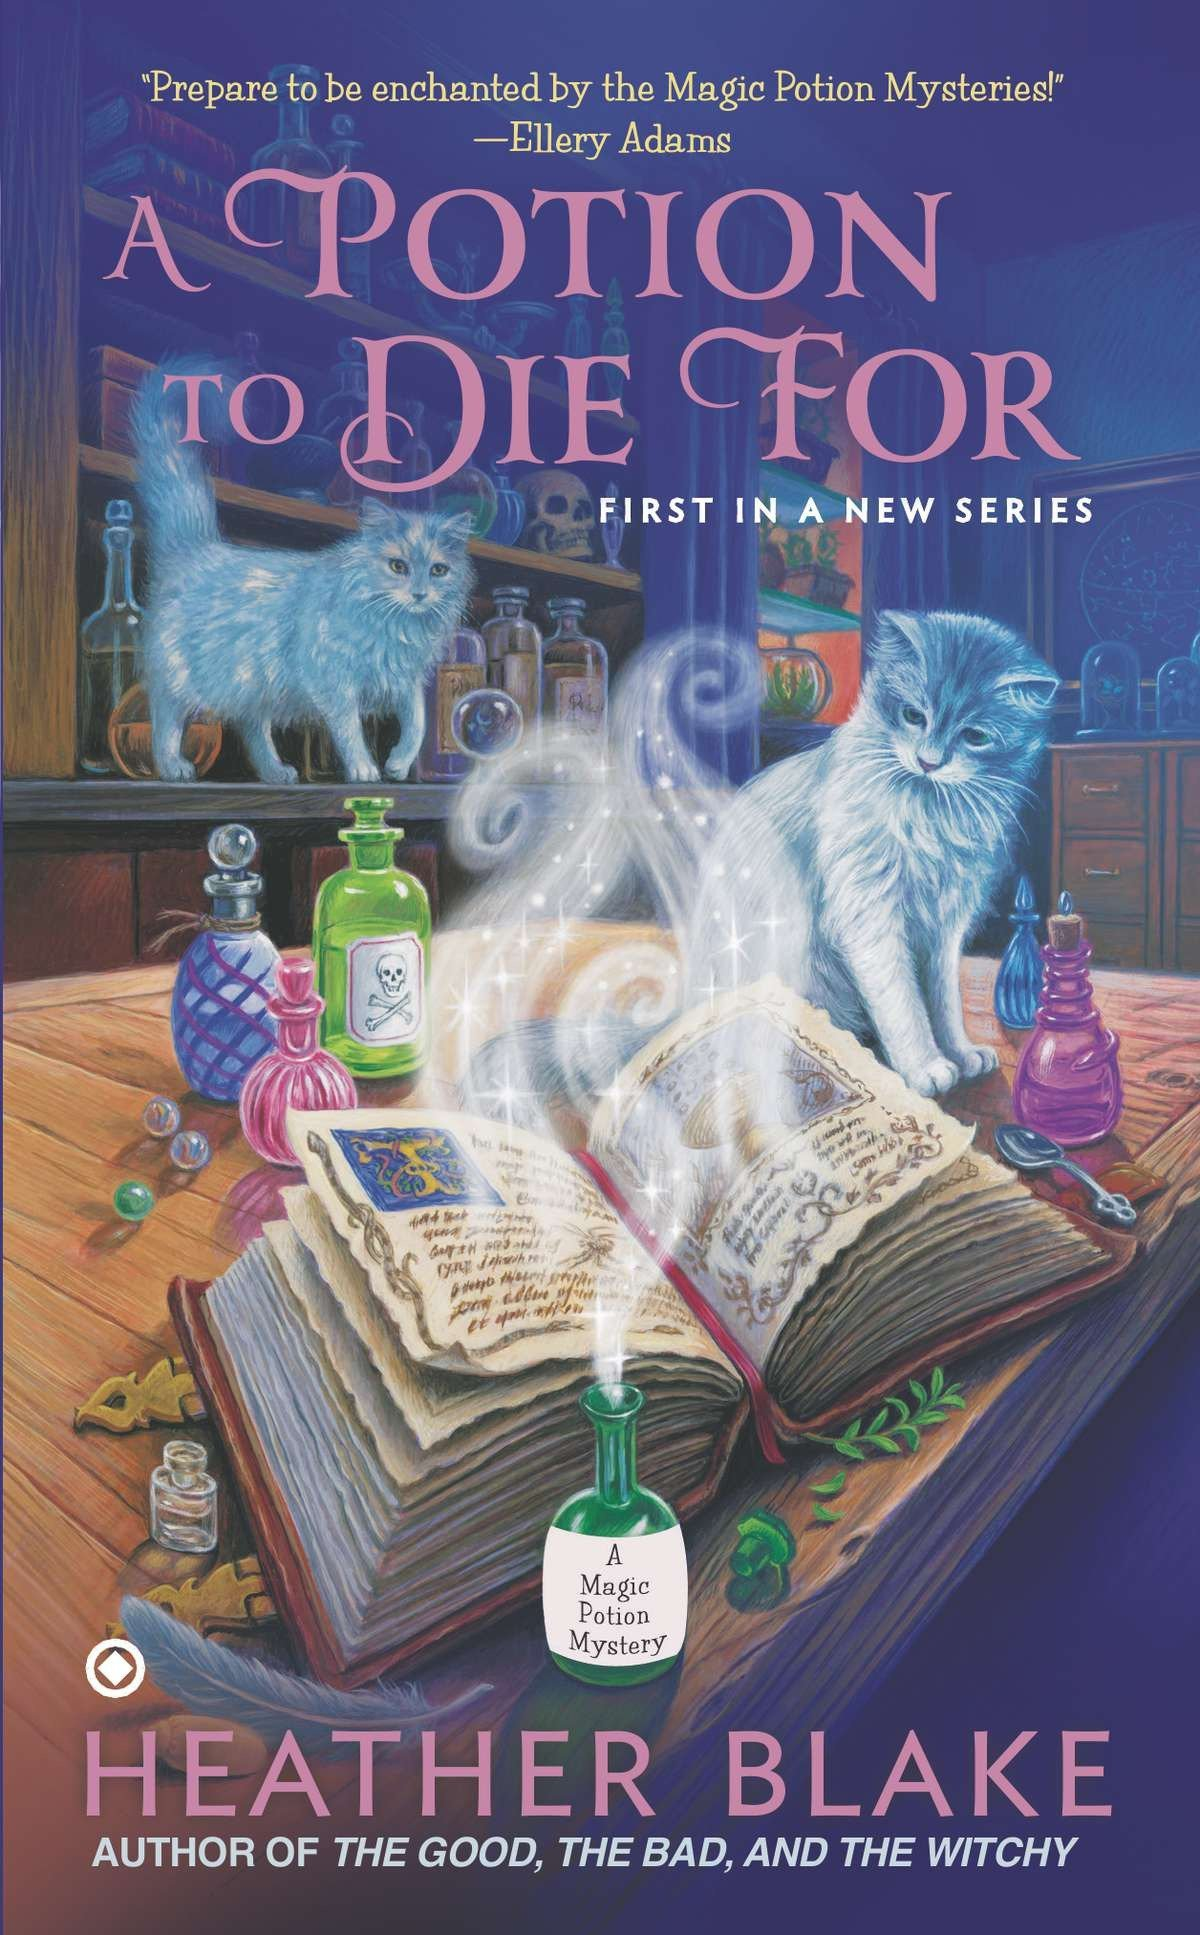 Amazon.com: A Potion to For: A Magic Potion Mystery ... on potter map, halloween map, freshwater map, alchemy map, cauldron map, honey map, programming language map, ruby map, amulet map, silver map, fancy map,